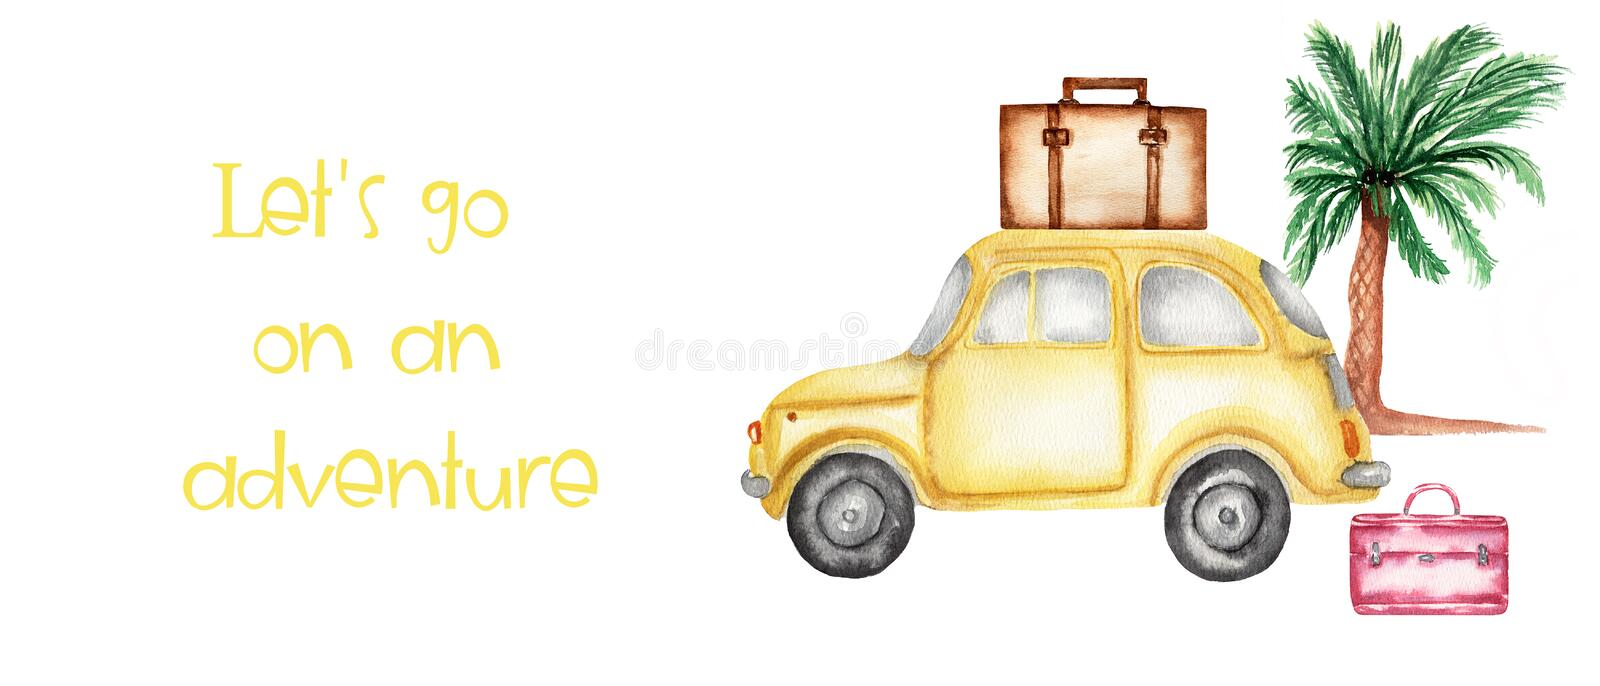 Hand drawing watercolor set for travel - suitcases,car and palm tree. illustration isolated on white. Travel card with space for royalty free illustration